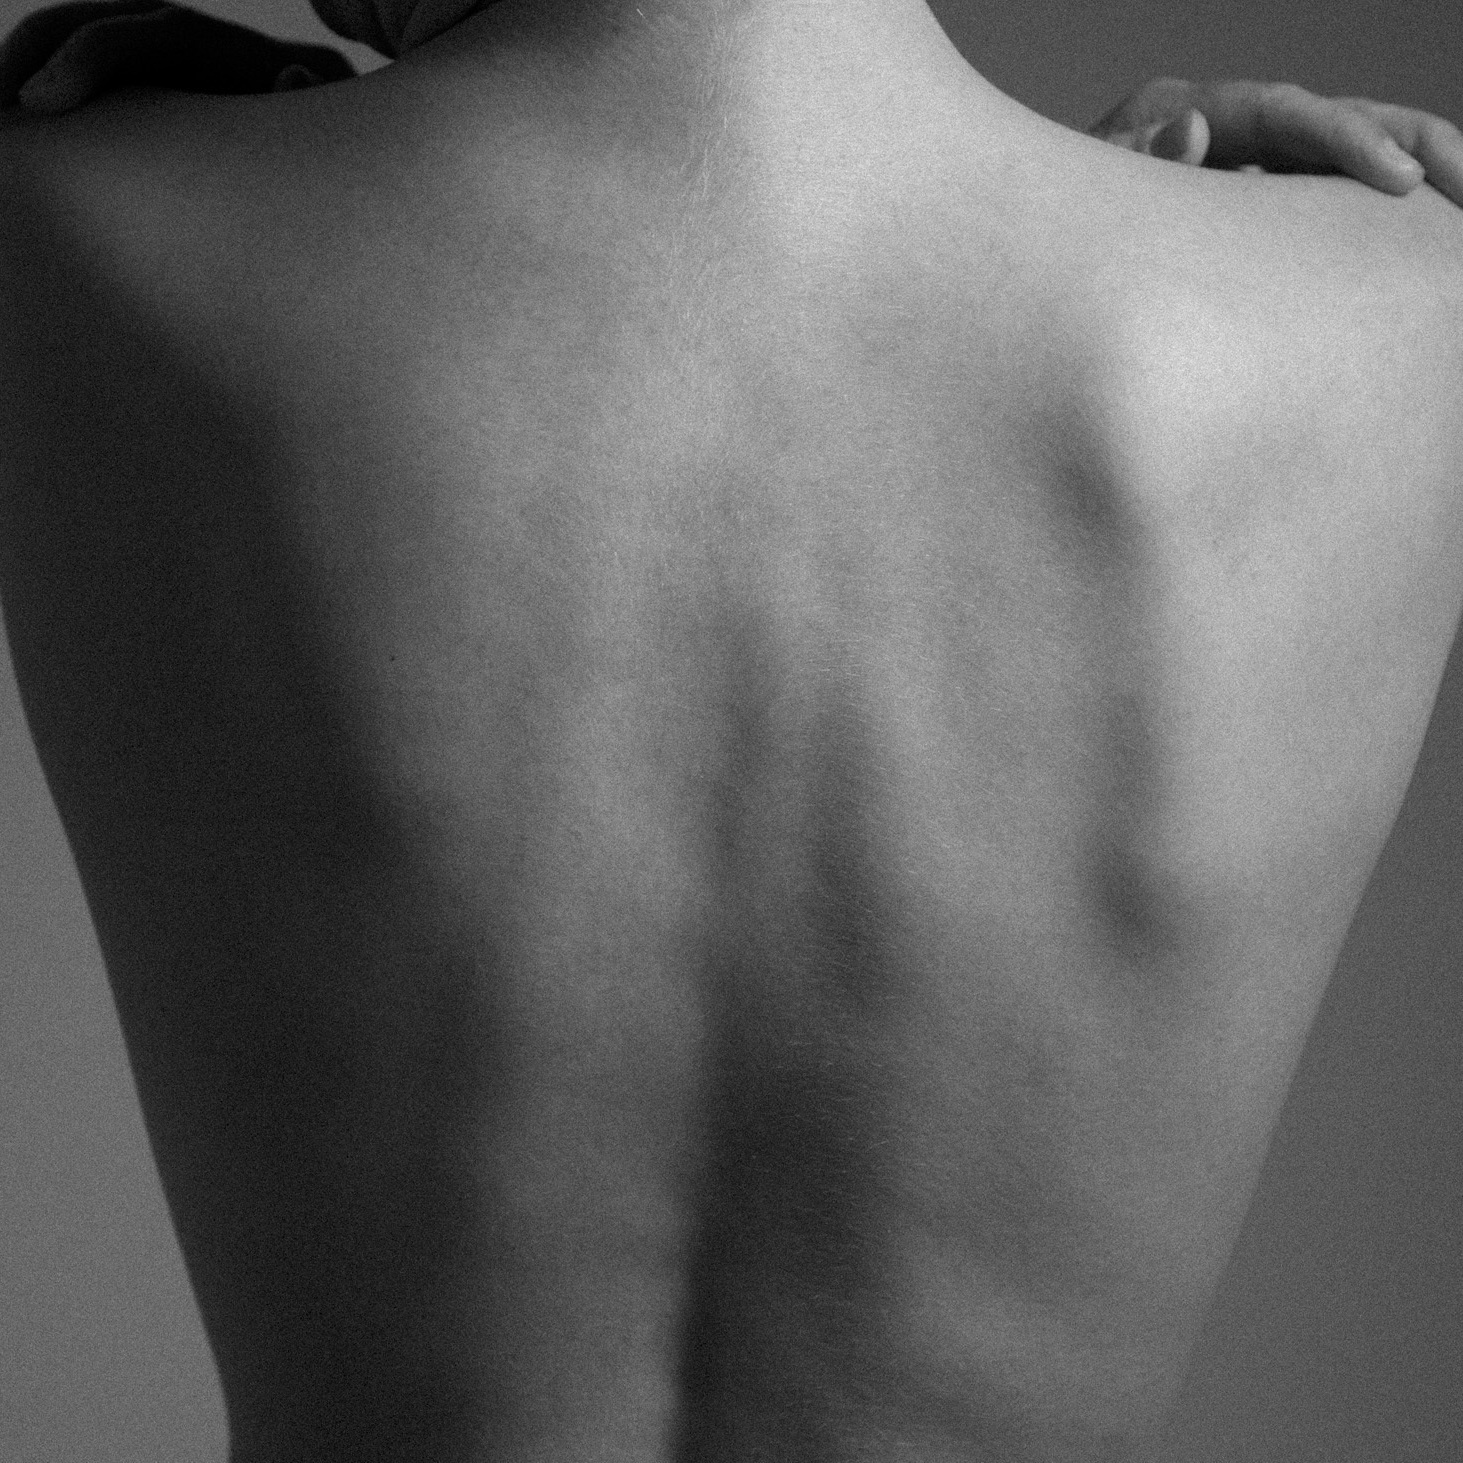 Rhye's debut album, Woman, comes out March 5.